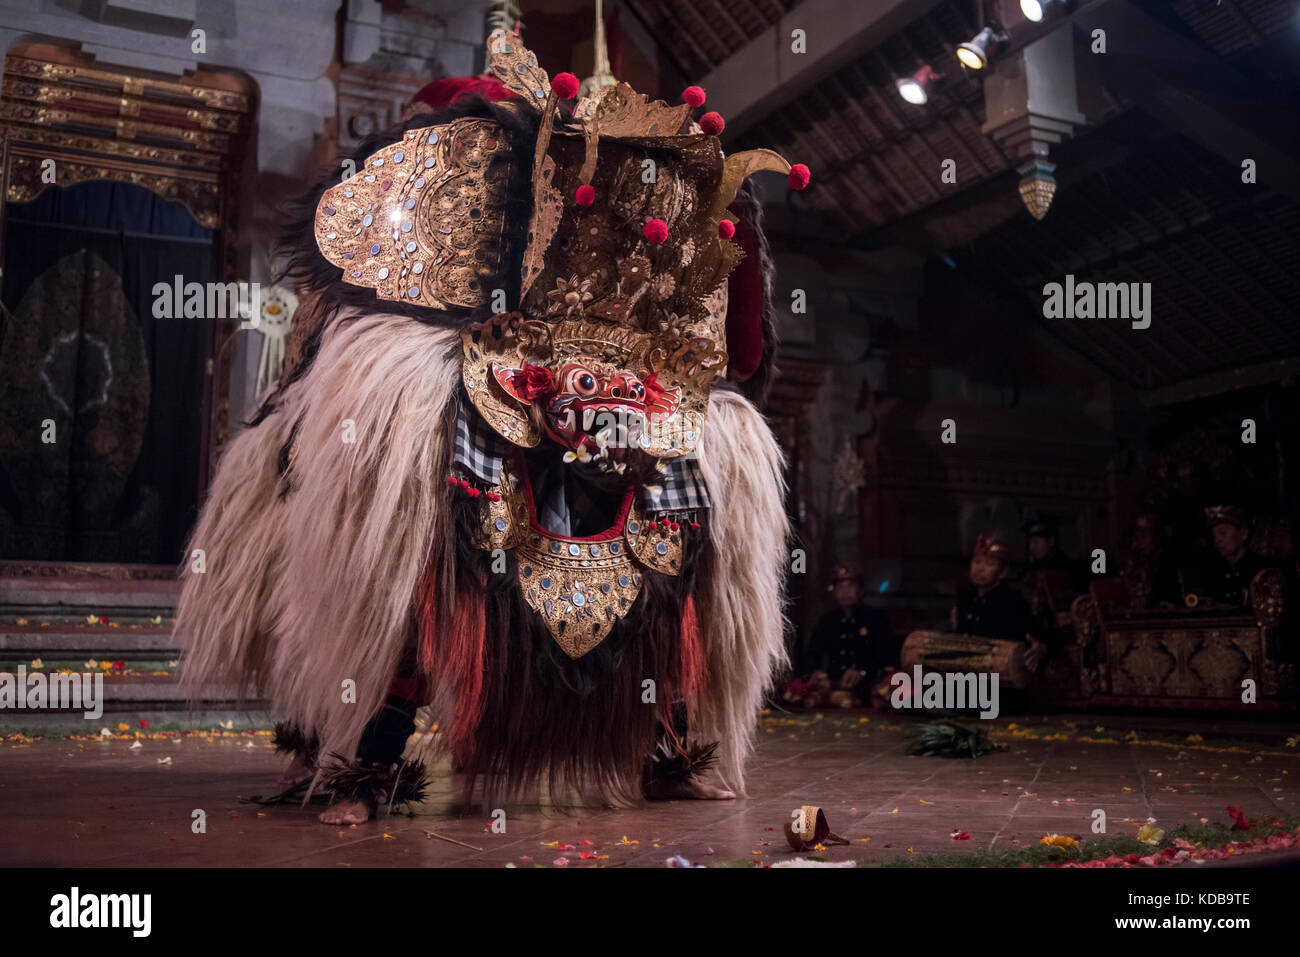 Traditional Balinese Legong dancer performing in a theater in Ubud, Bali, Indonesia. - Stock Image